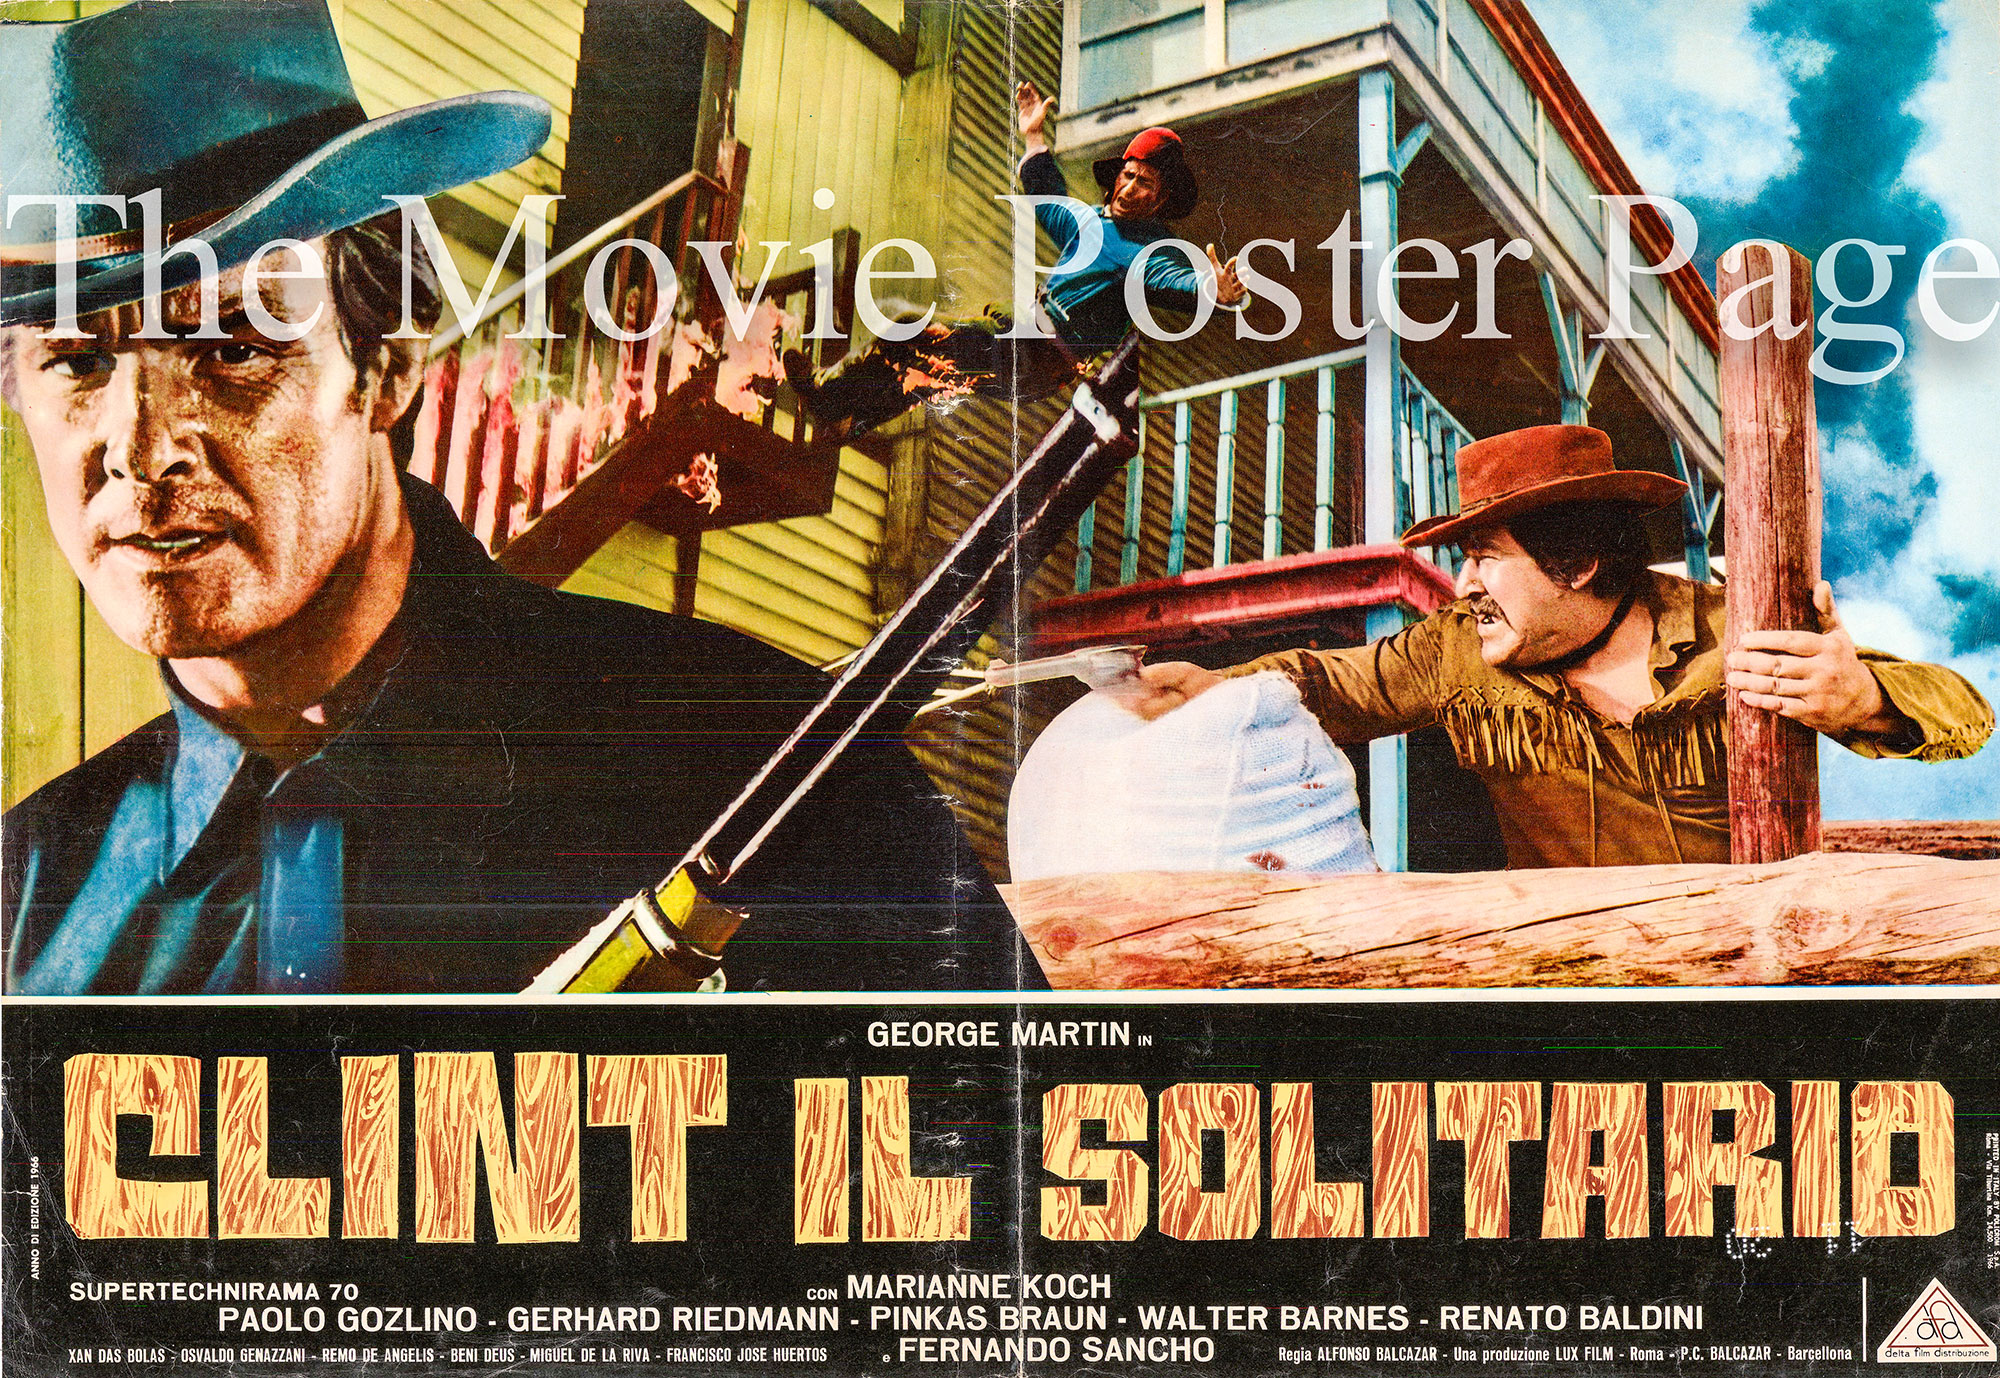 Pictured is an Italian busta poster made to promote the 1967 Alfonso Balcazar film Clint the Stranger starring George Martin.